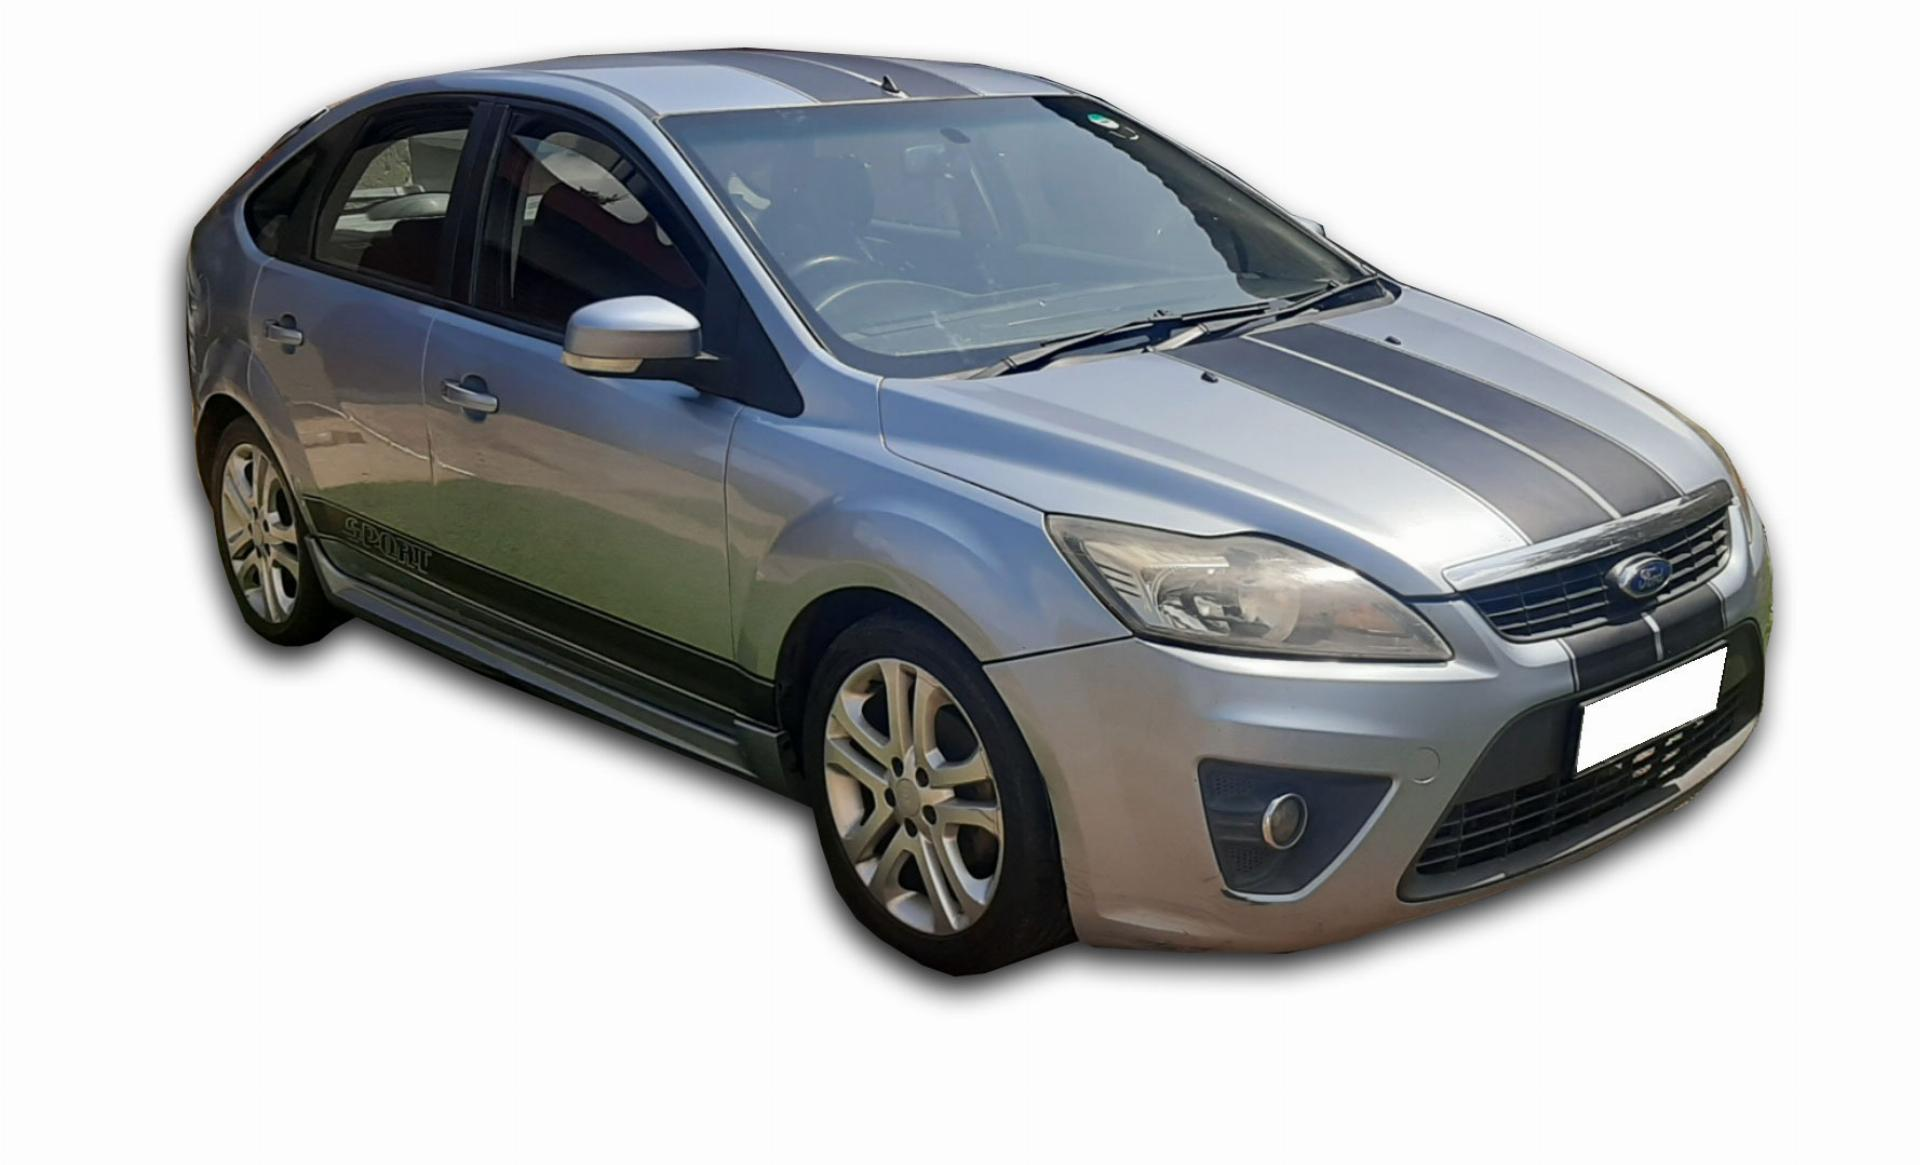 Ford Focus 1.8 SI 5DR